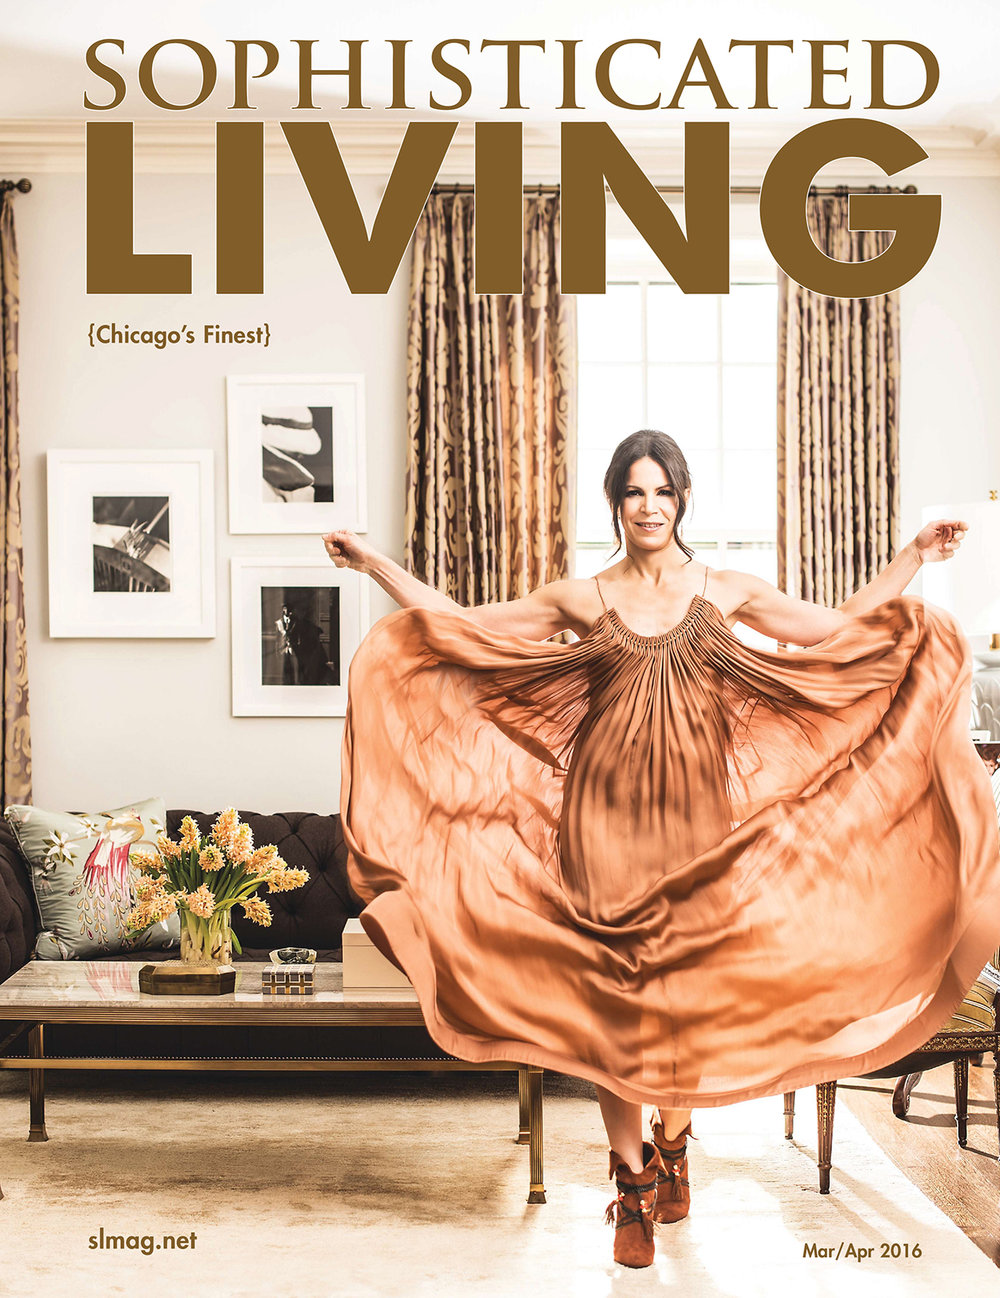 2016-Mar-Apr_SophisticatedLiving_Cover.jpg